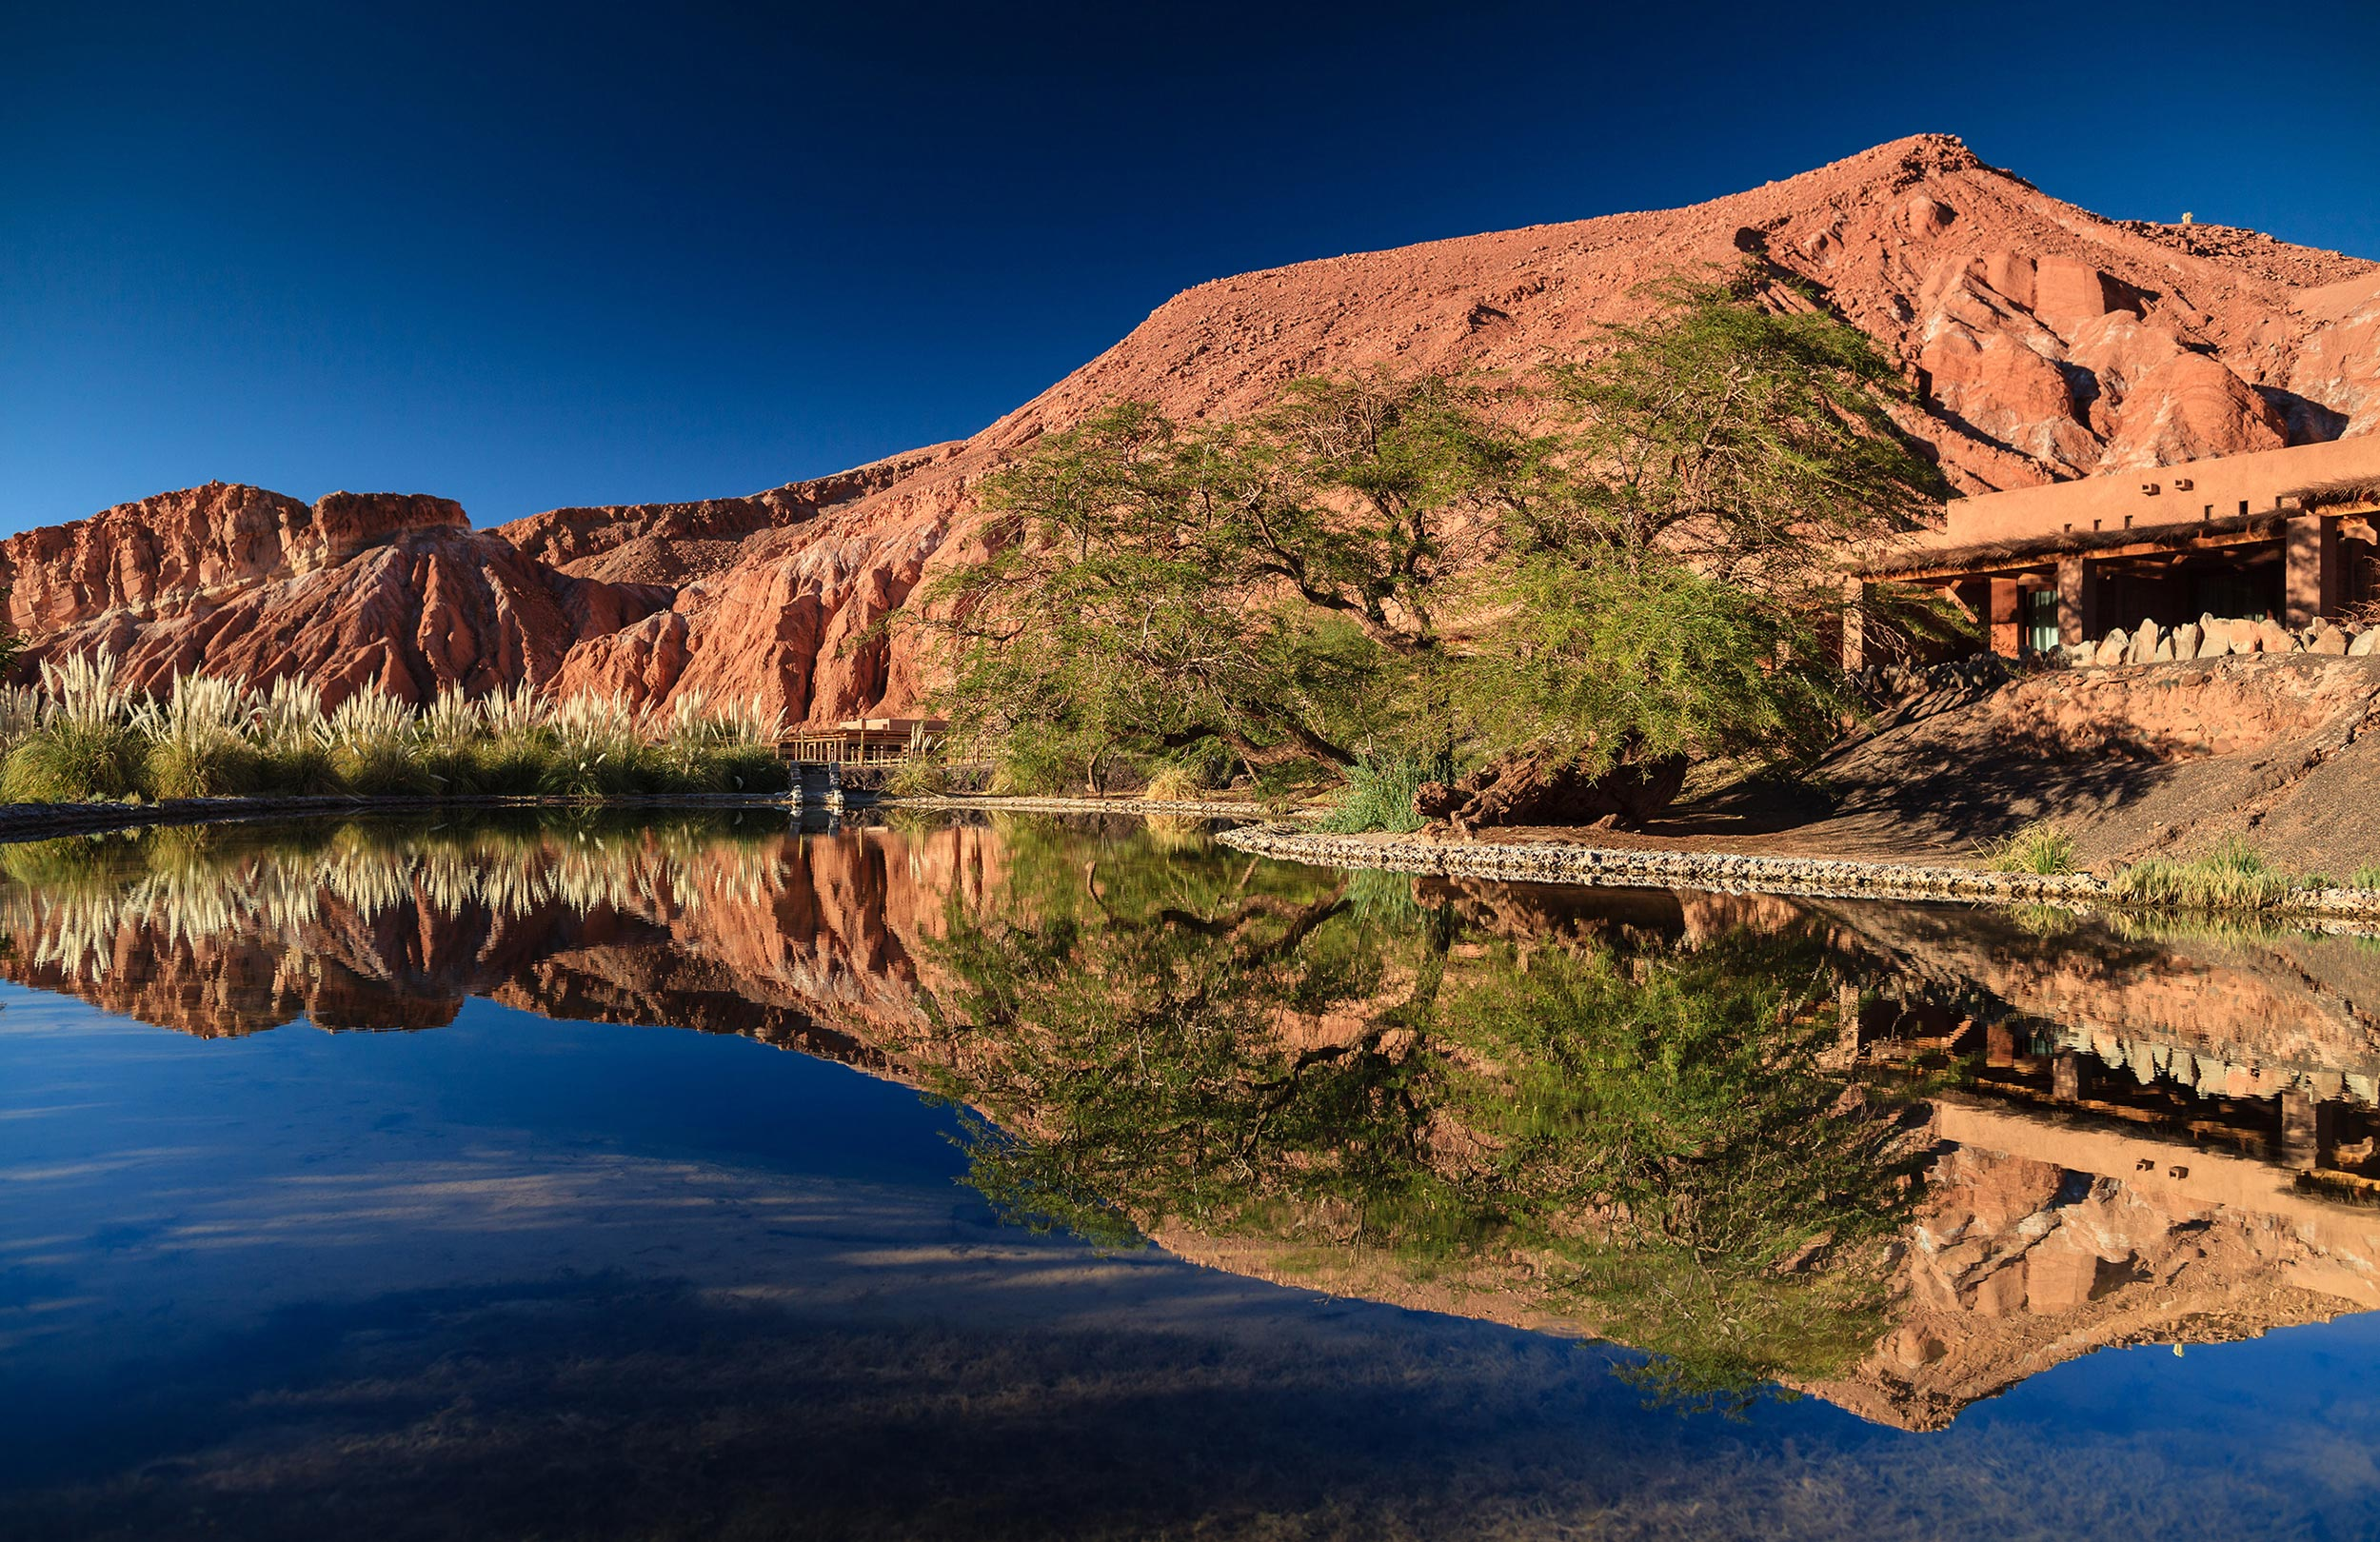 Reflection of Alto Atacama and the mountain behind it in the still water of the lake by it .